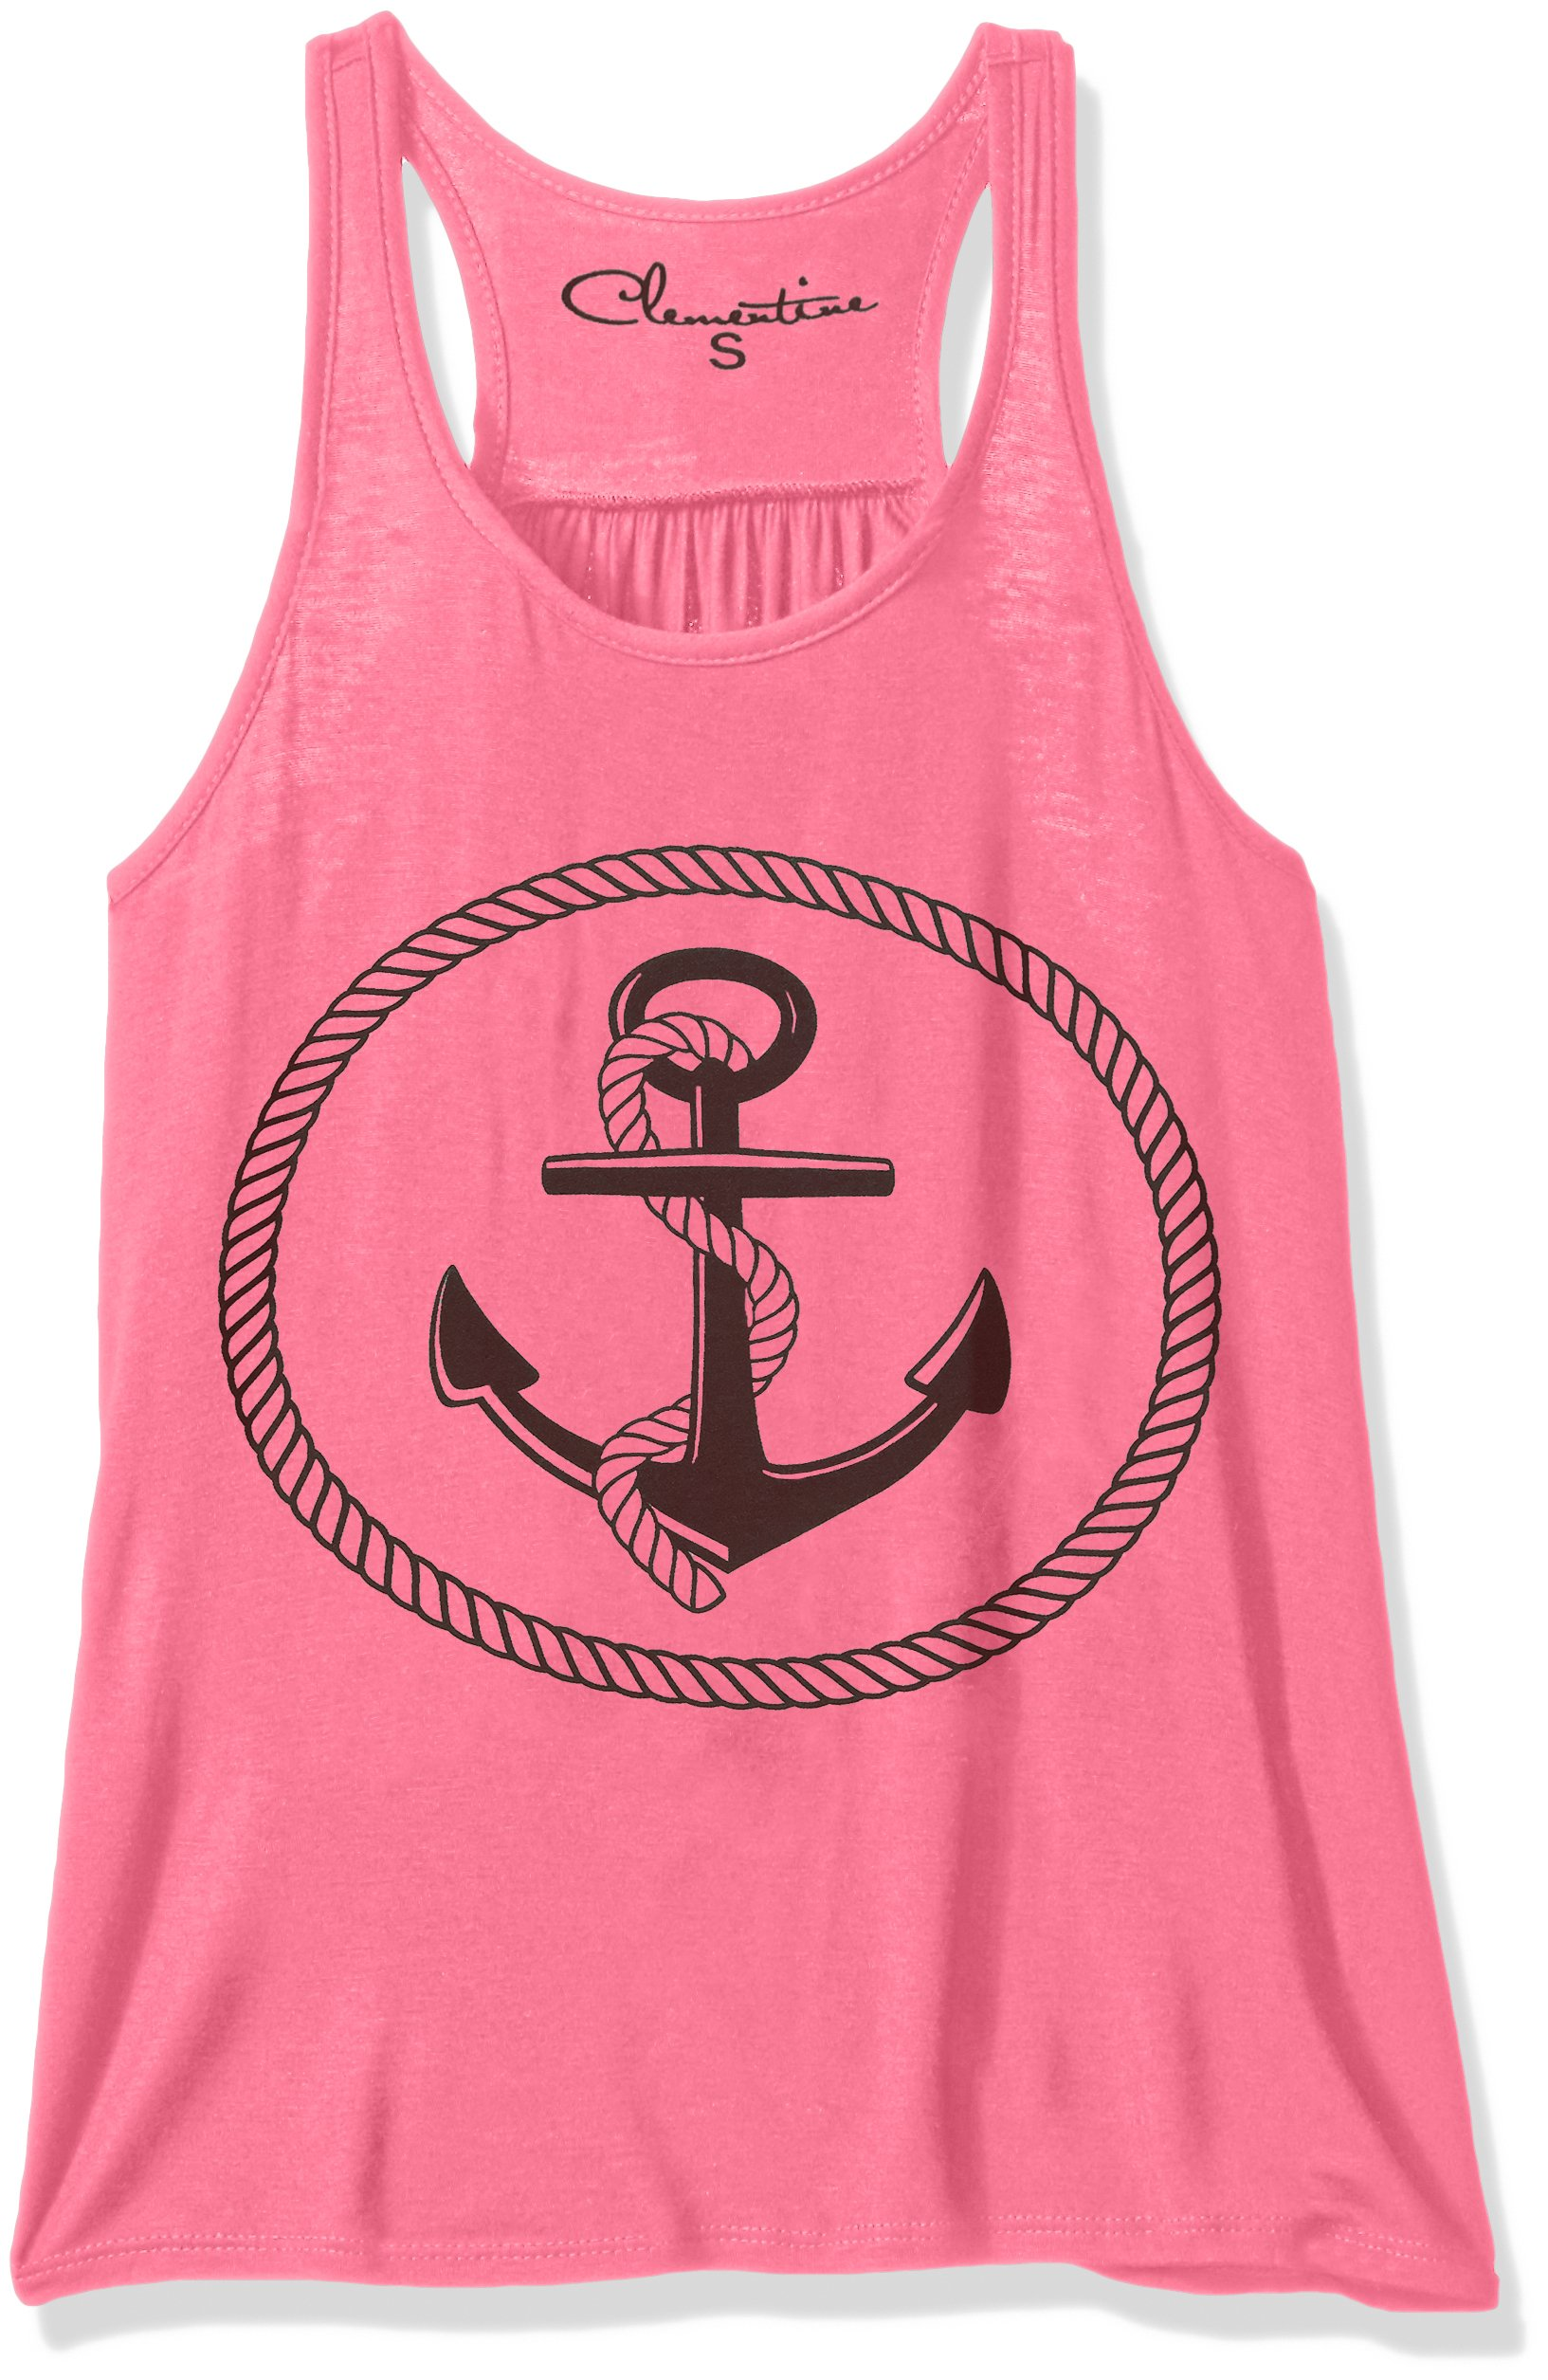 Clementine Apparel Women's Petite Plus Clementine Boat Anchor Printing Flowy Racerback Tank, Neon Pink, XS